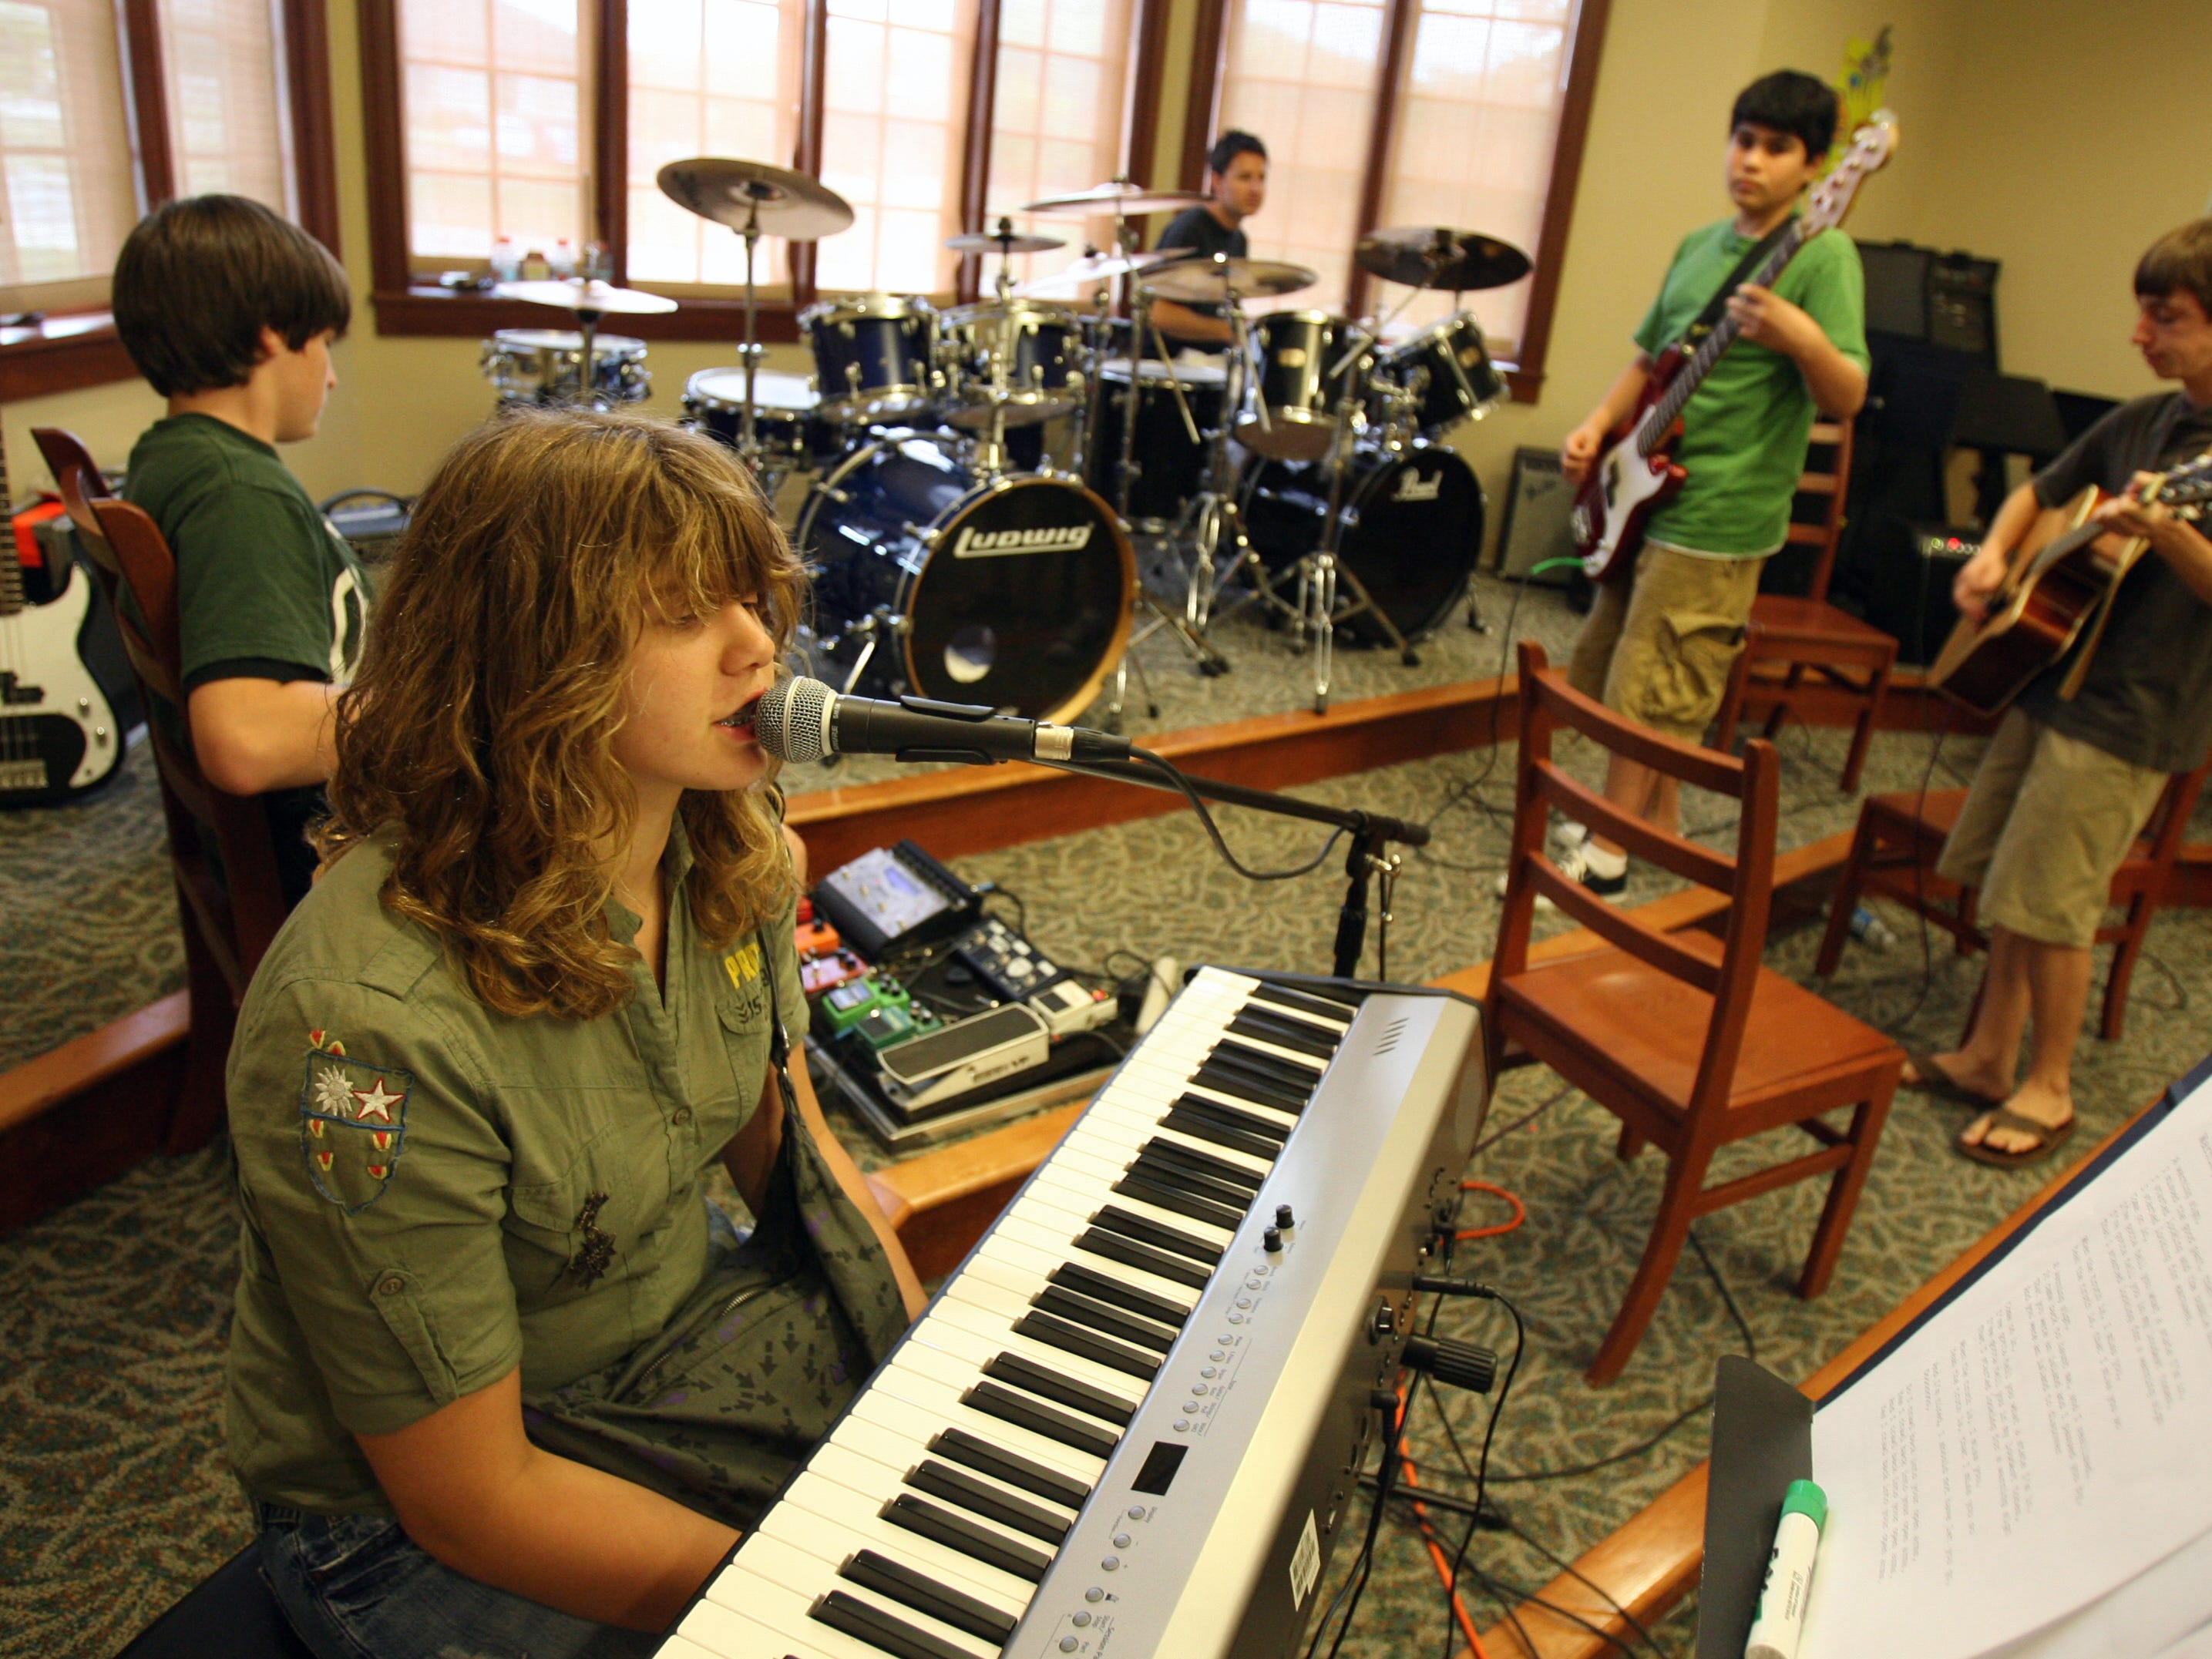 Alyssa Trama, 15, and the band Cousin Connah rehearse for their performance on Tuesday, July 17, 2007, at the end of The Greater Nashville Rock and Roll Theatre Camp at Currey Ingram Academy in Brentwood.